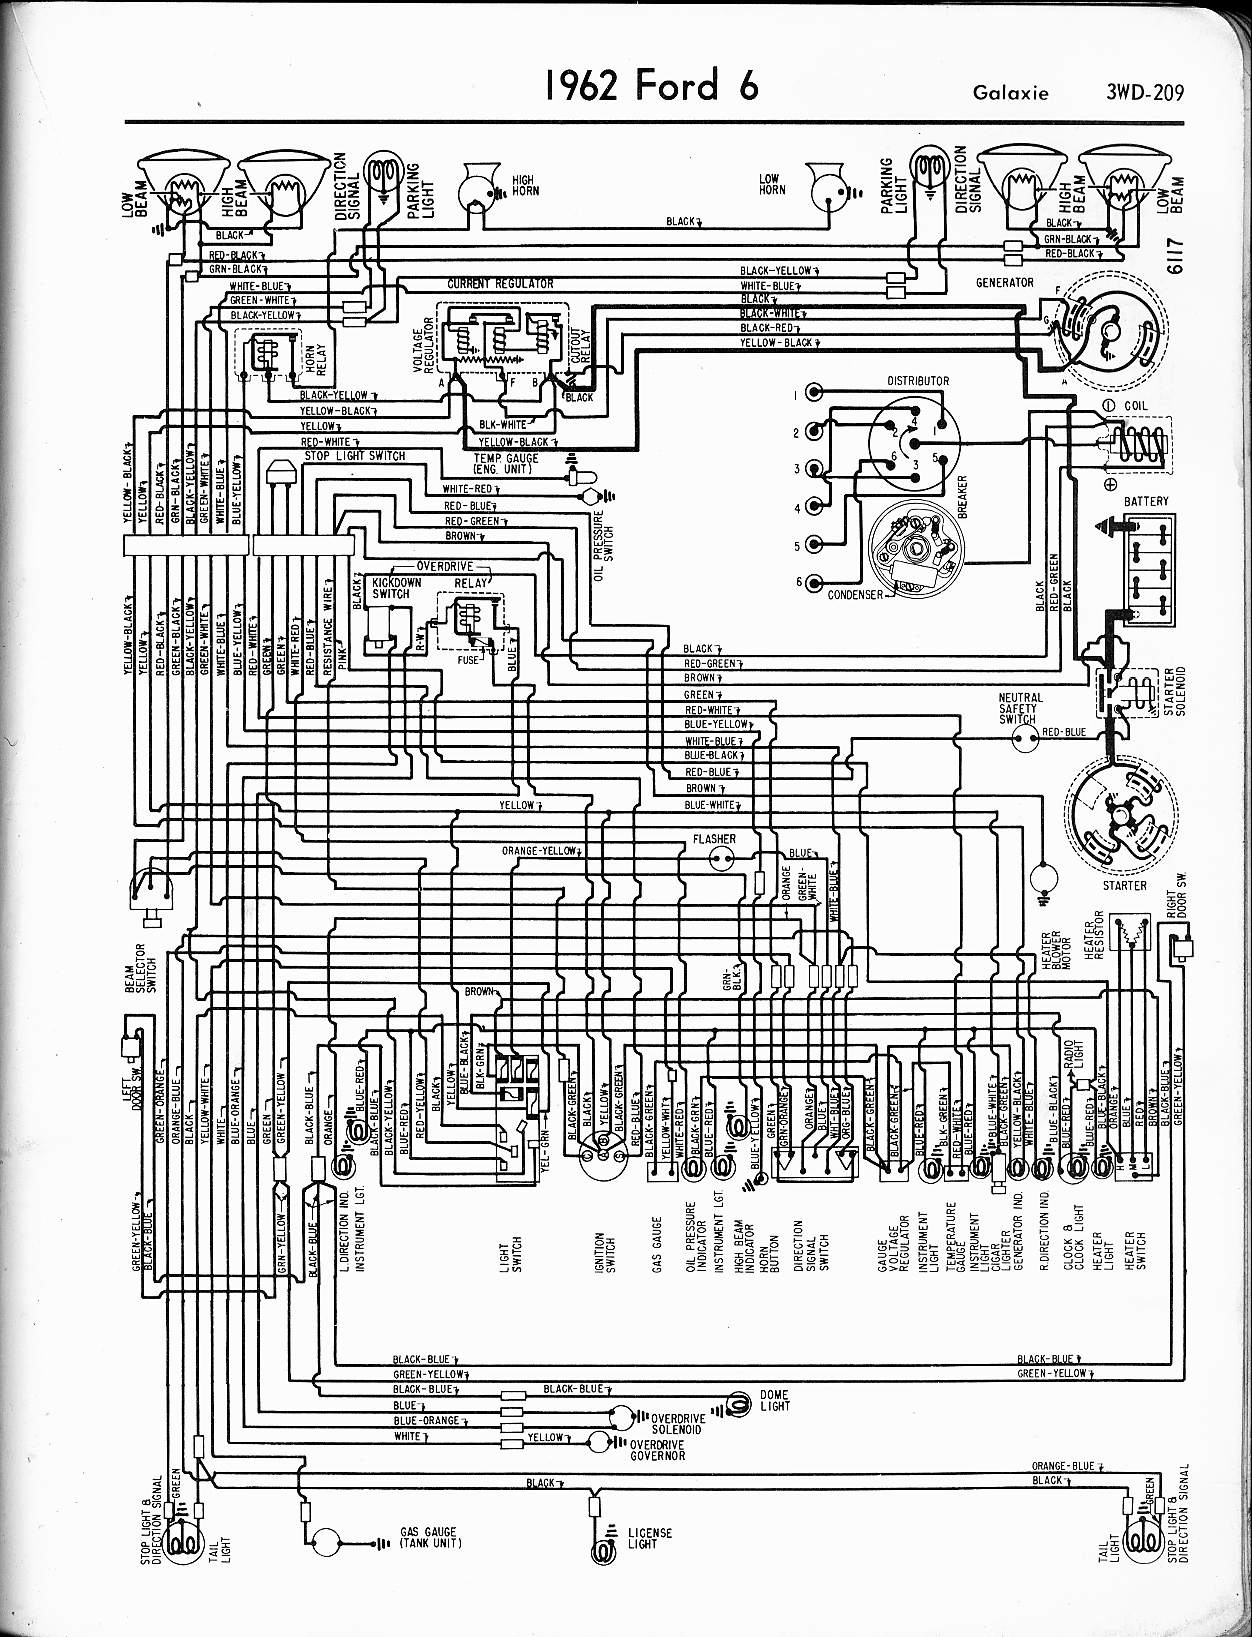 MWire5765 209 57 65 ford wiring diagrams ba falcon wiring diagram free download at nearapp.co